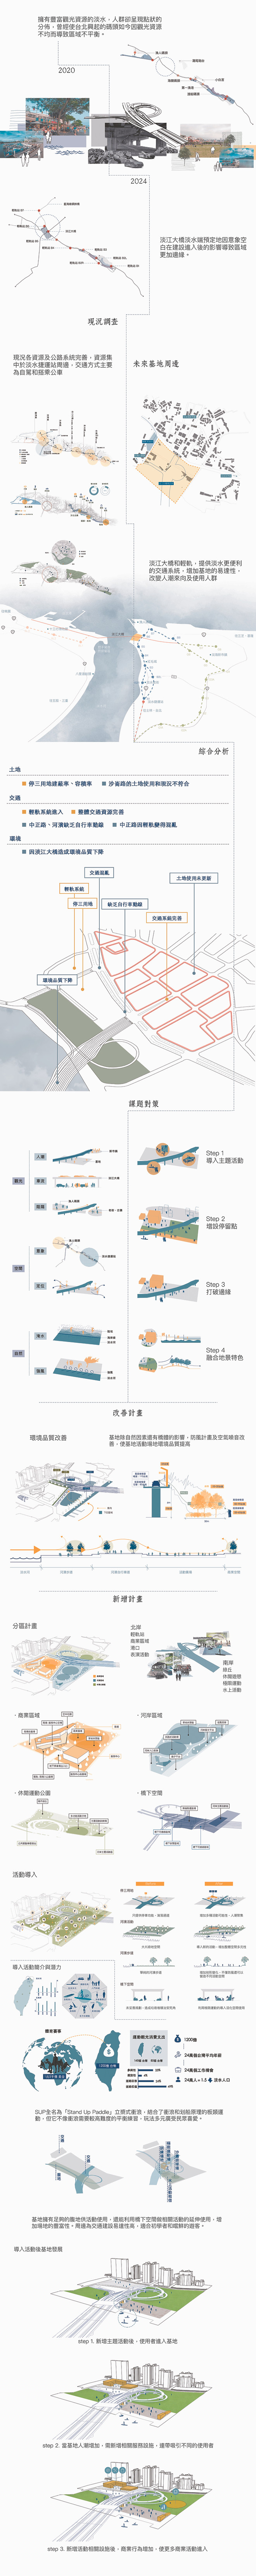 AFTER 2024 TAMSUI-作品內容01.jpg